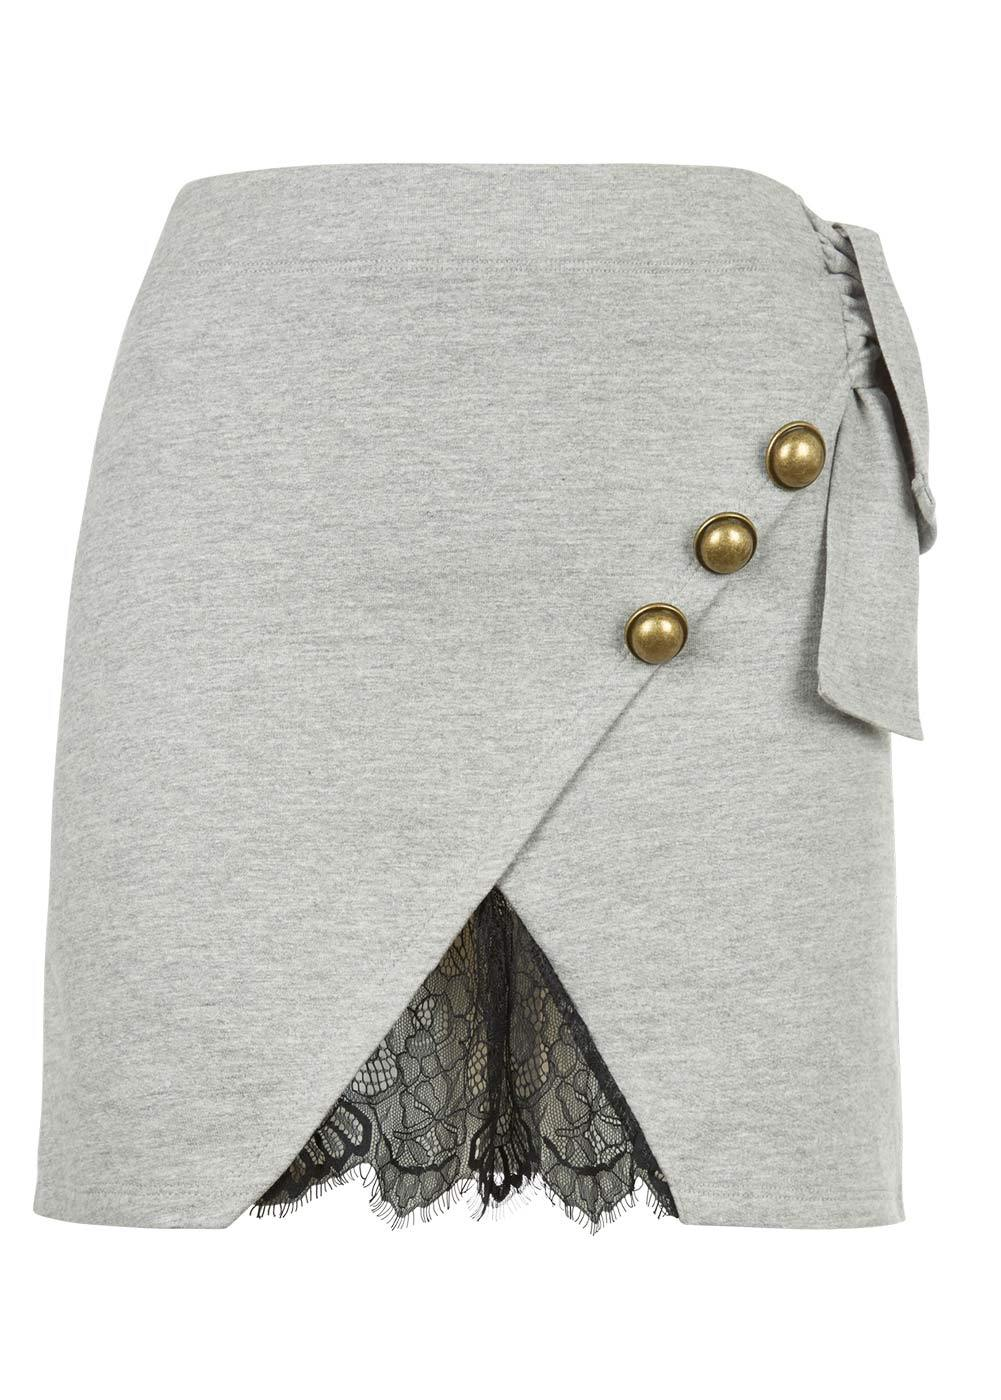 Girls Light Grey Mini Skirt With Buttons And Lace Insert